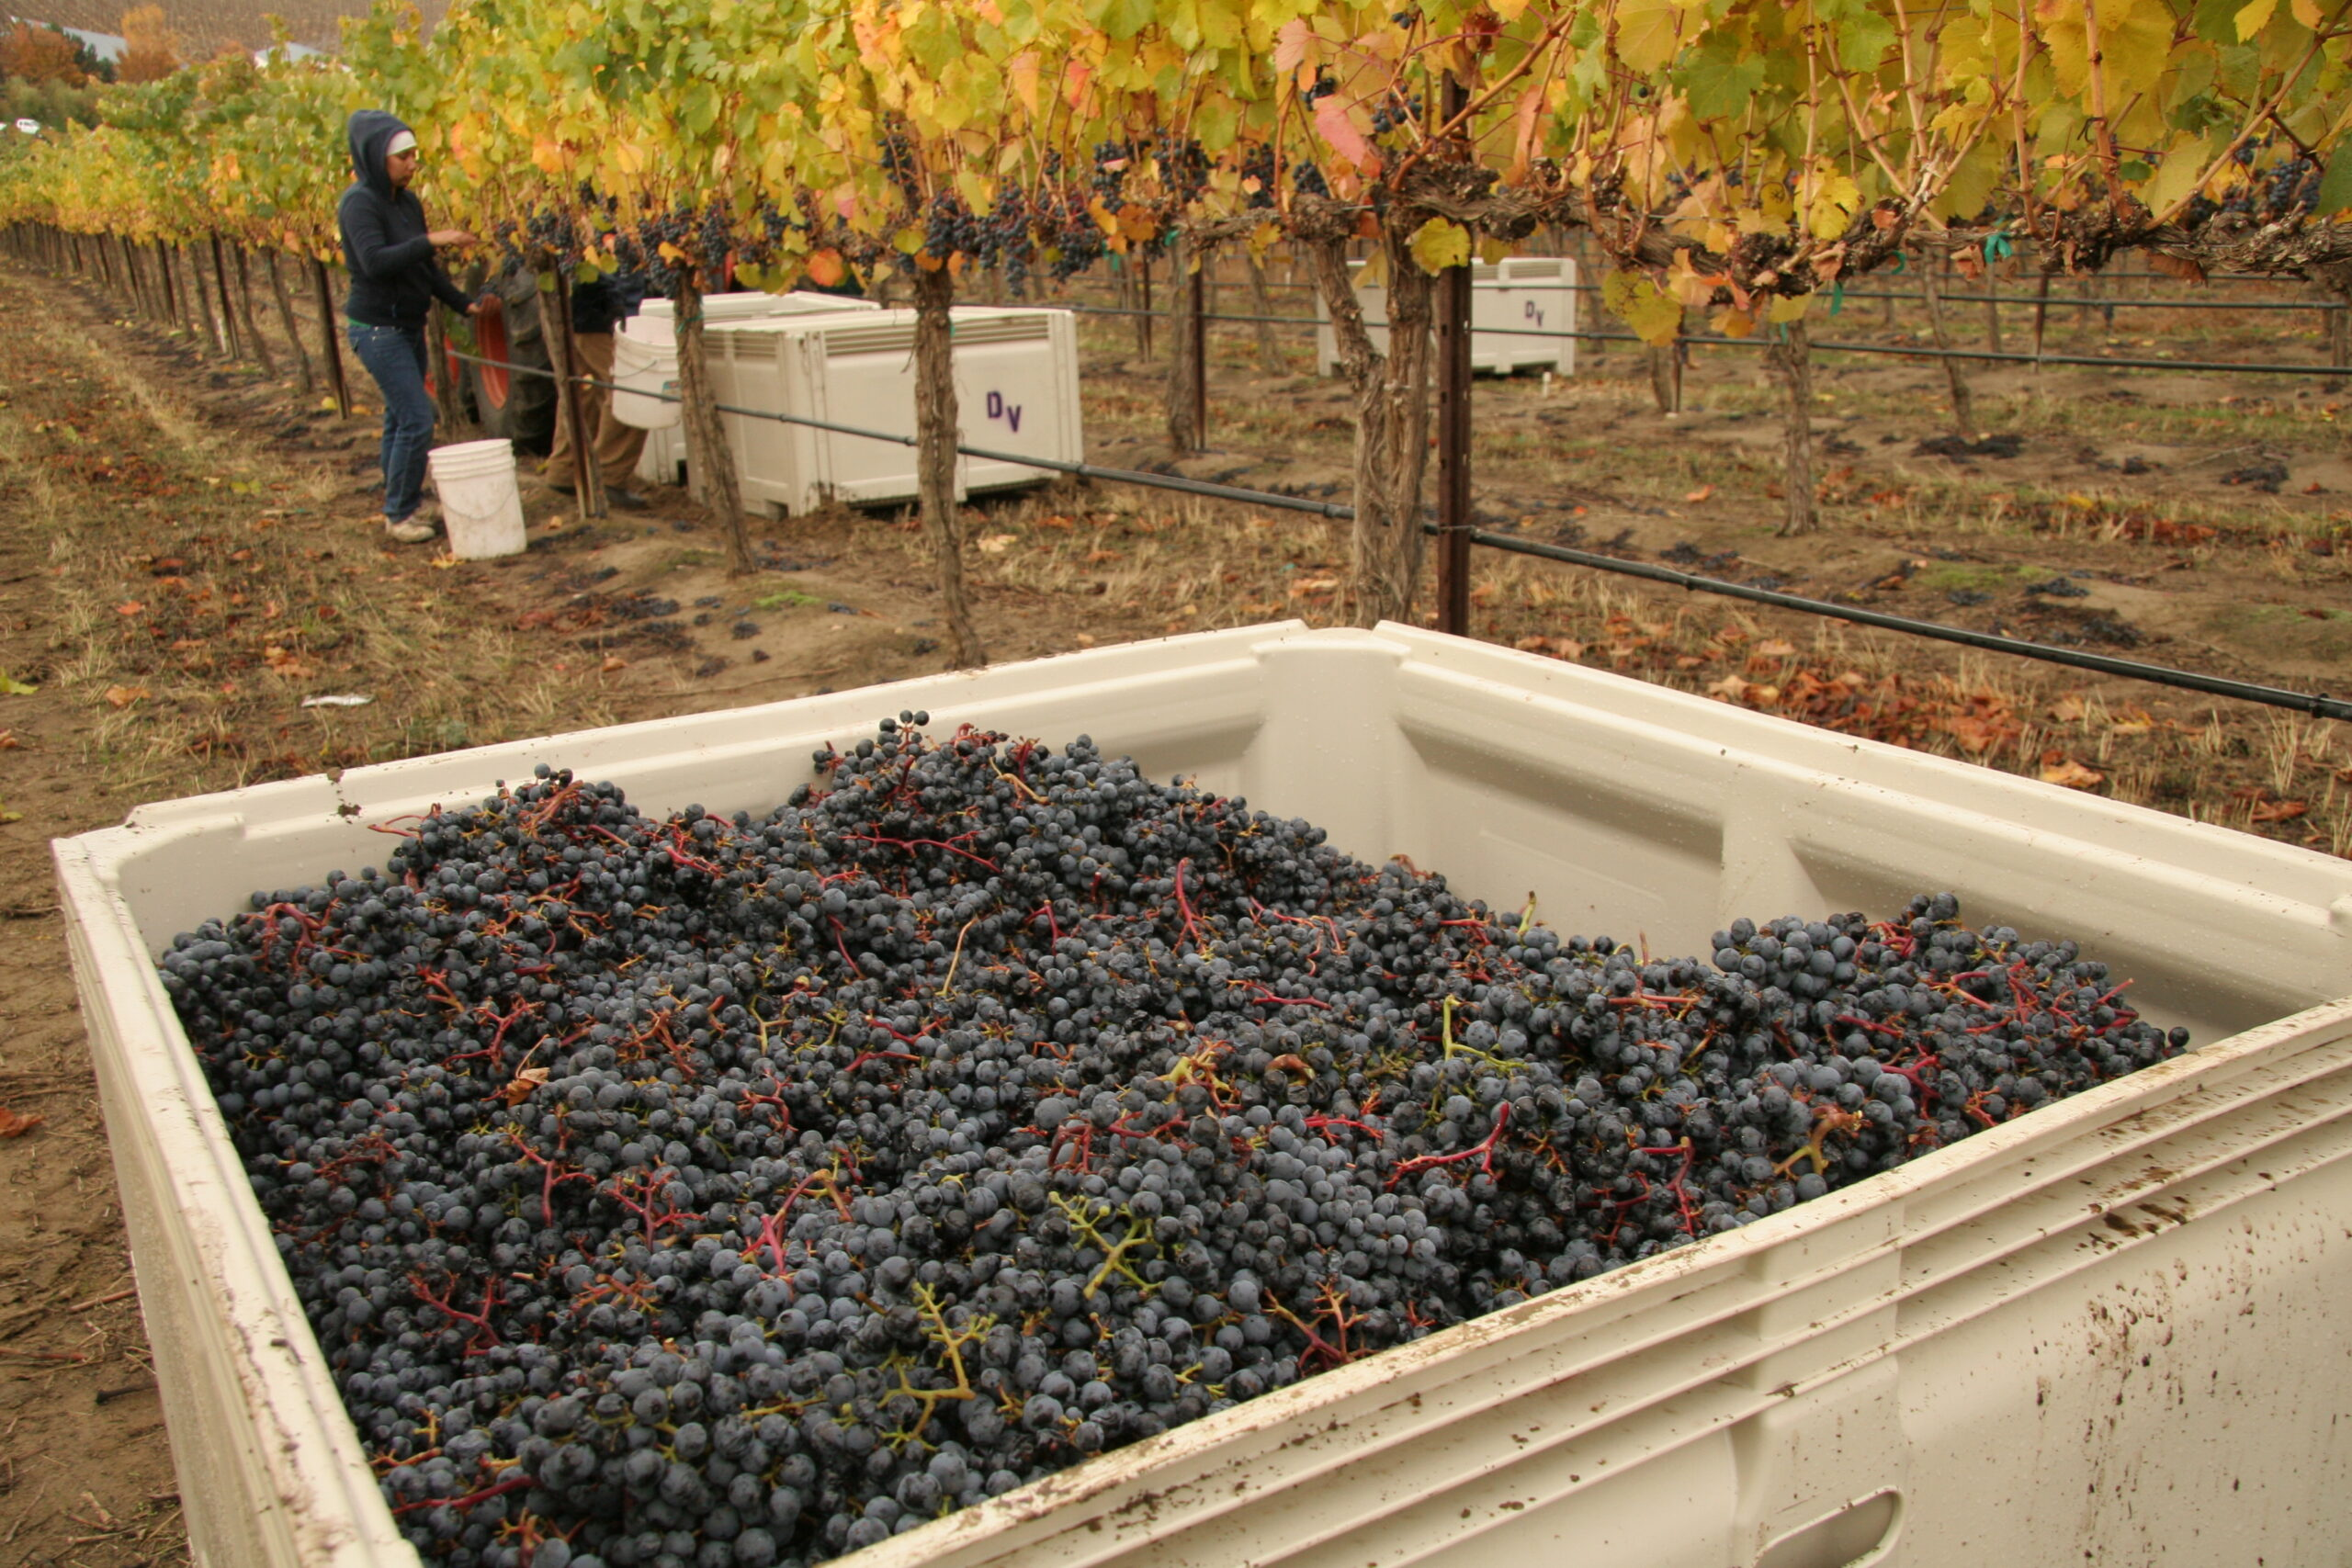 A white bin of dark indigo wine grapes, with a woman picking grapes behind it and several more bins between rows of vines.